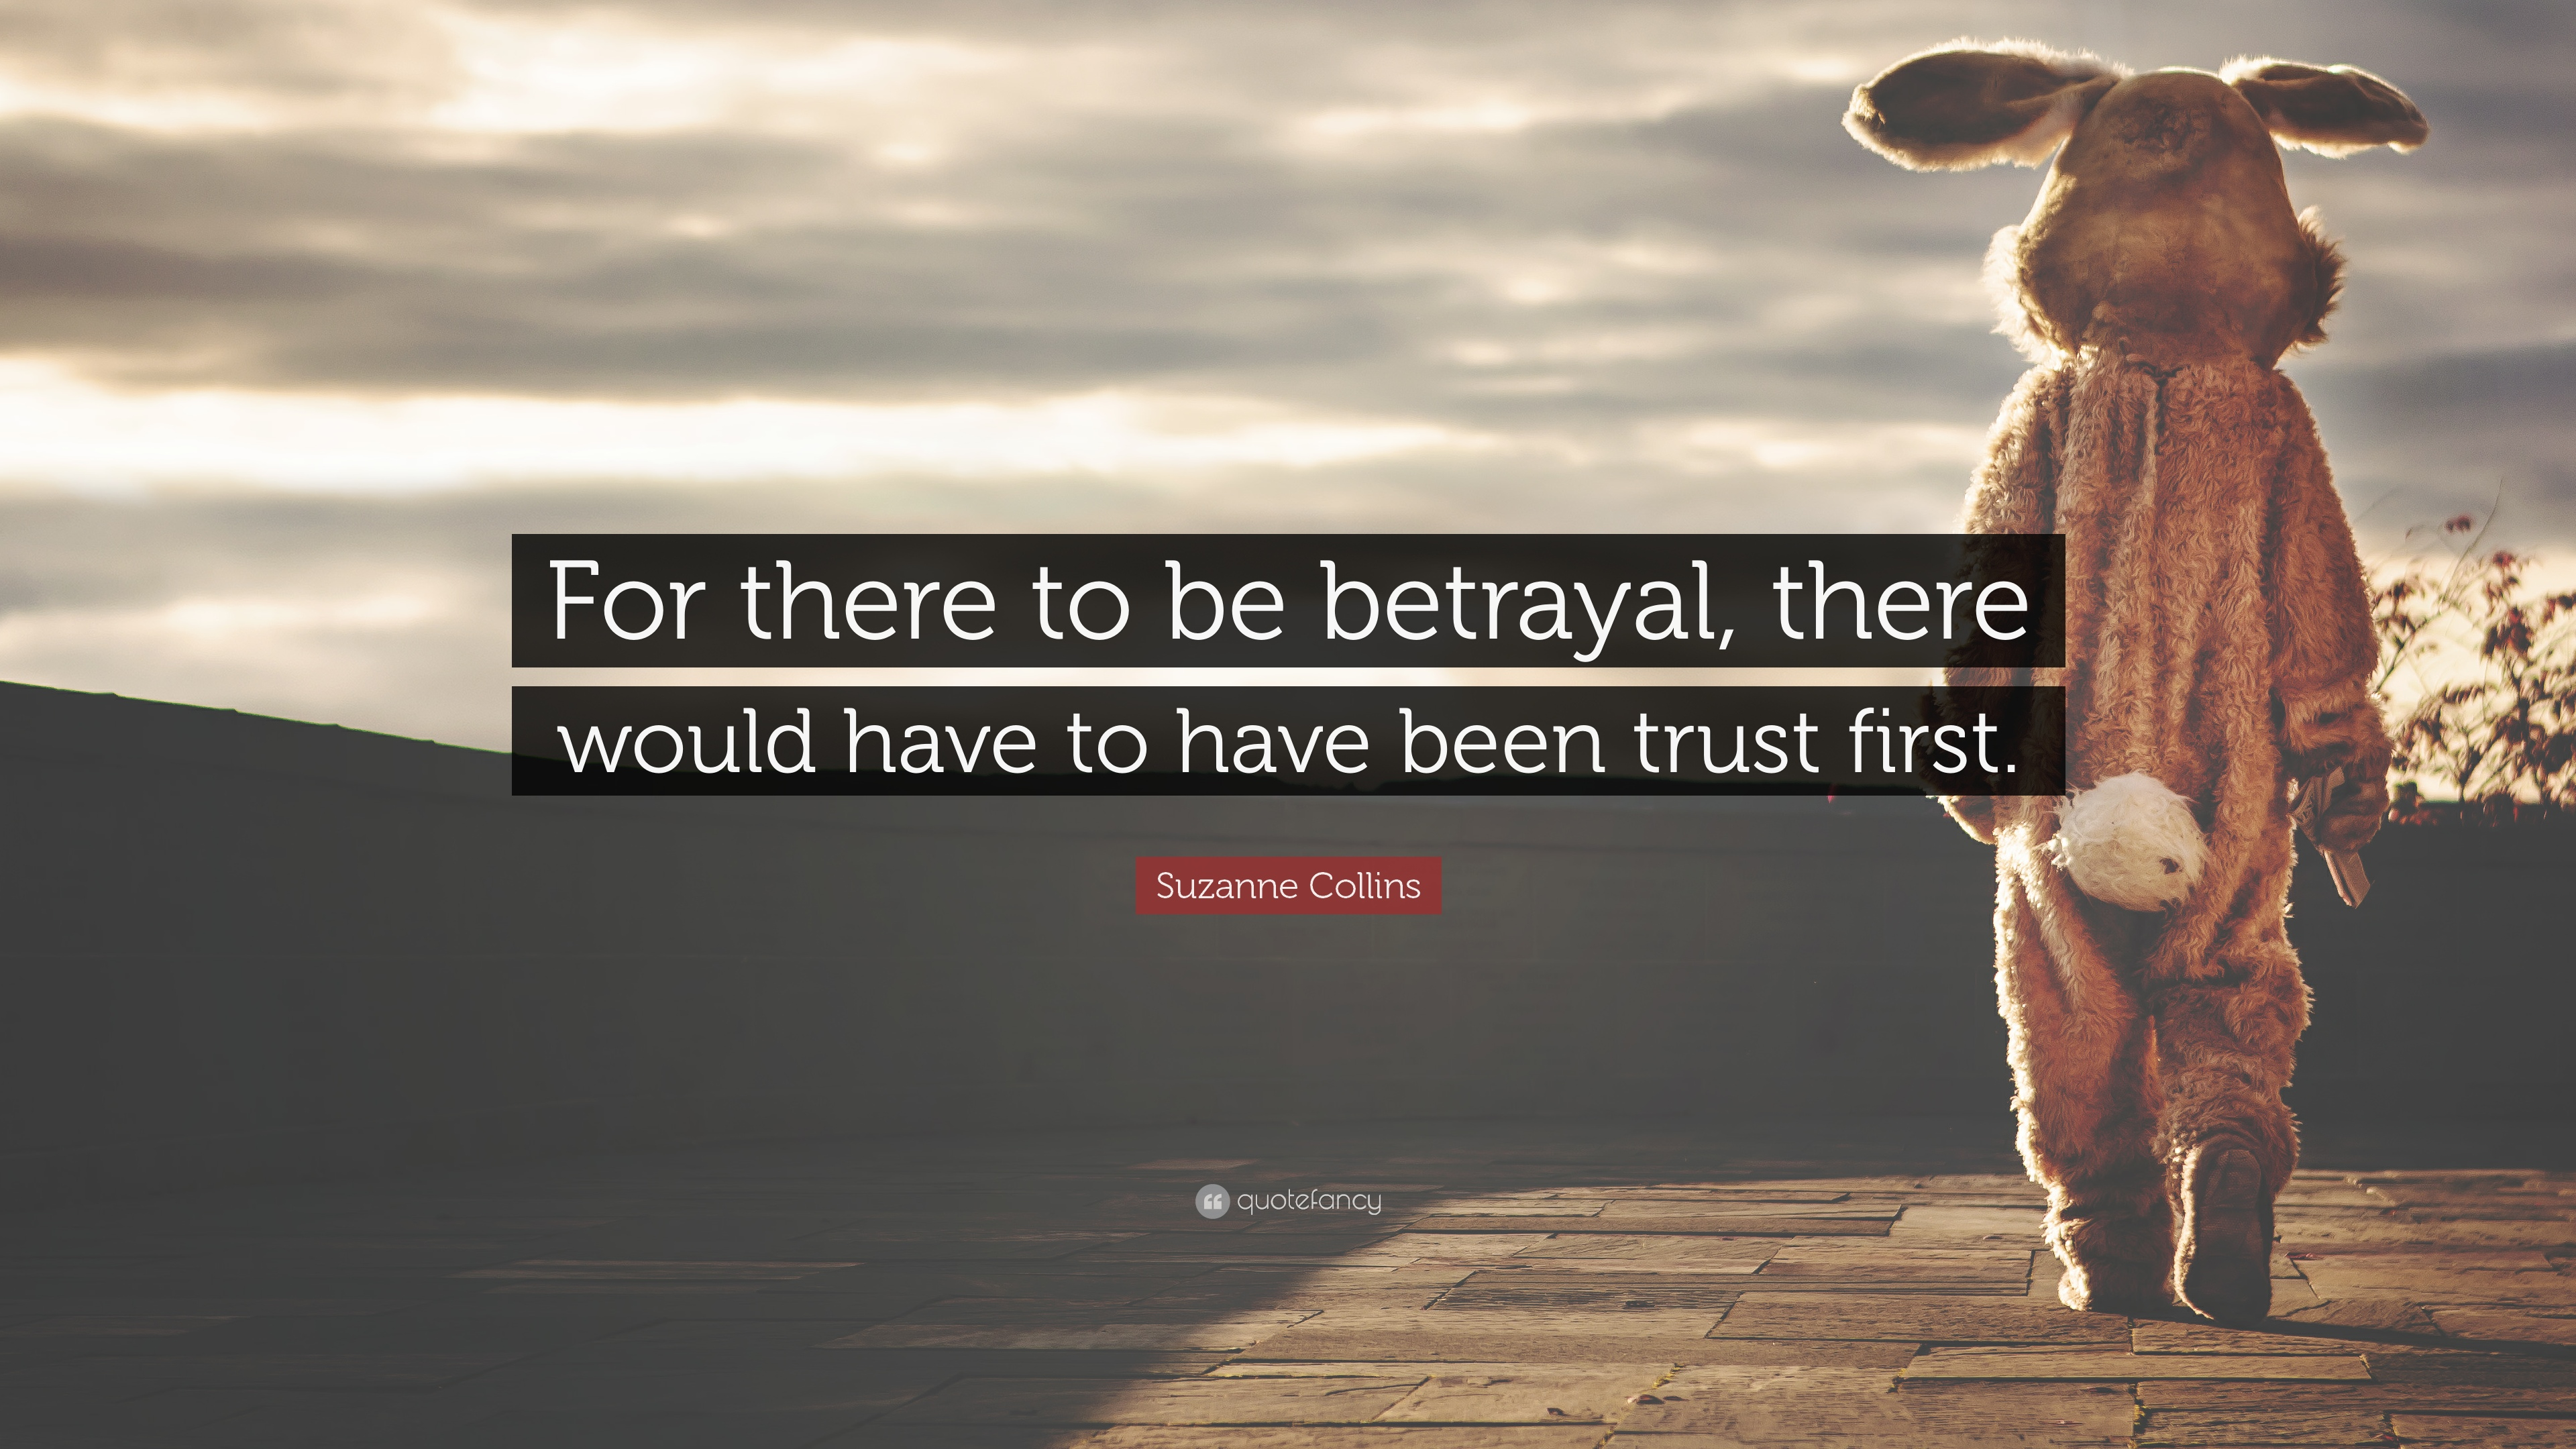 Quotes on betrayal and trust - Suzanne Collins Quote For There To Be Betrayal There Would Have To Have